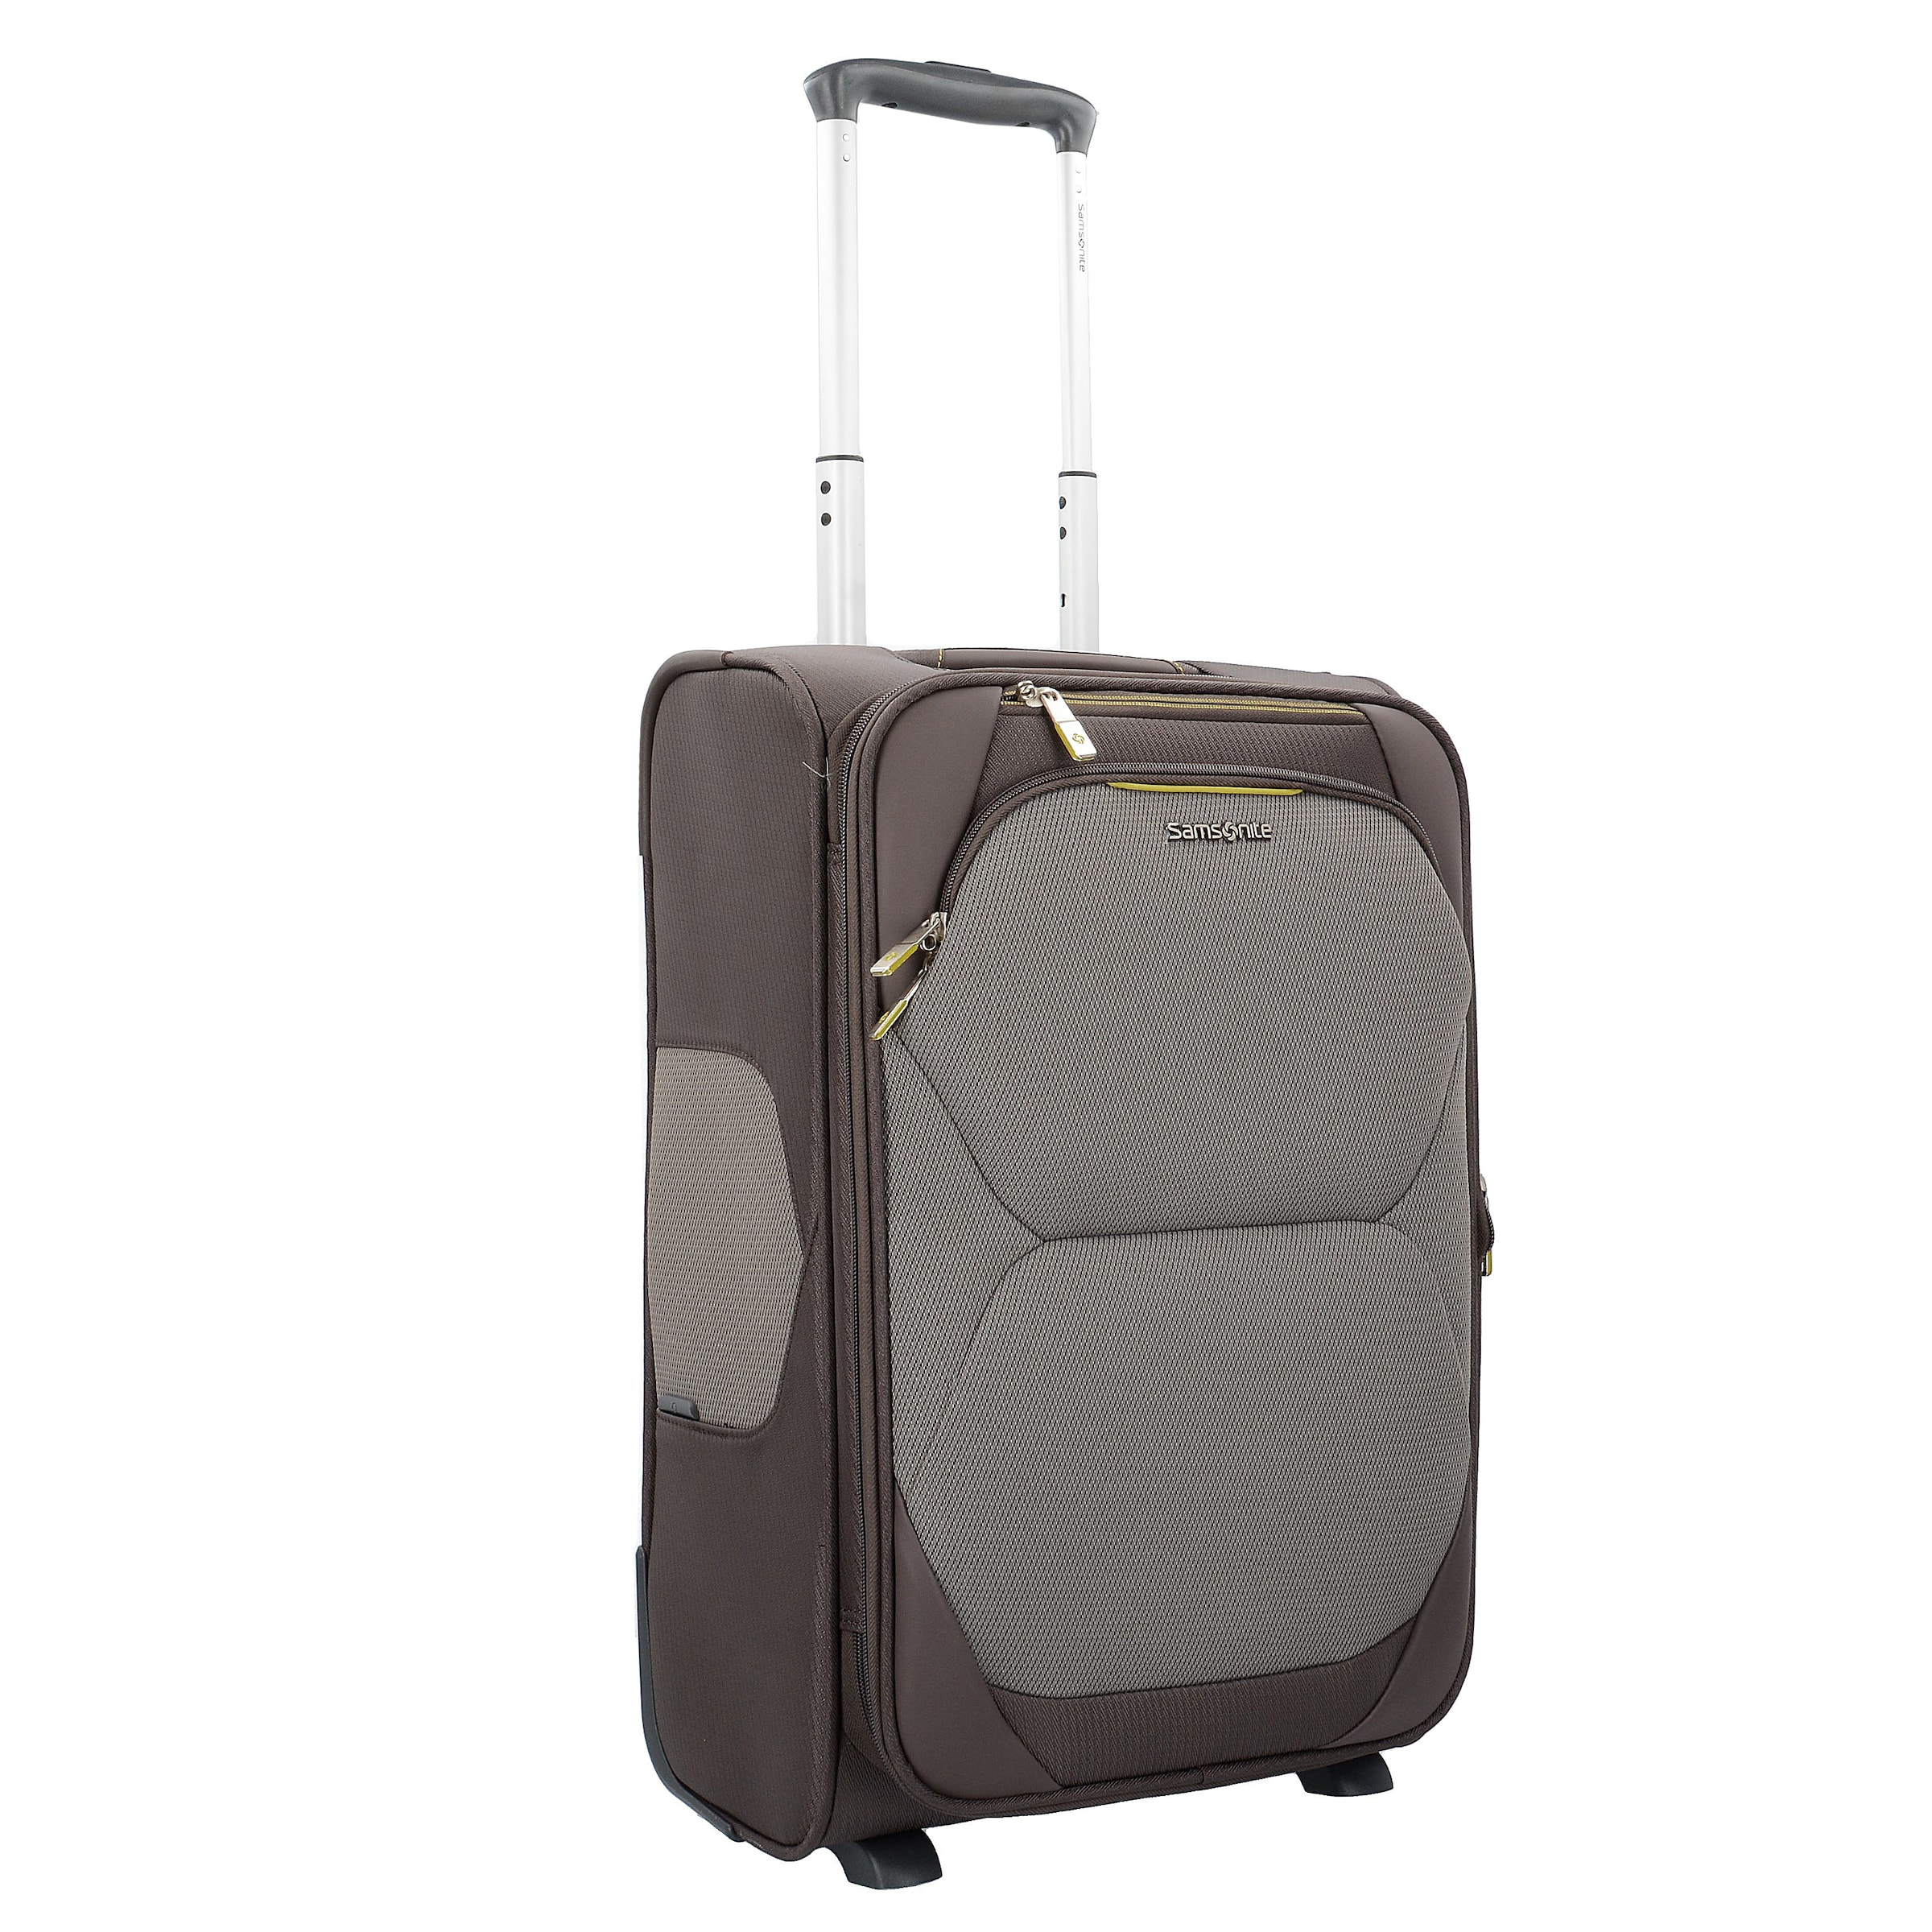 Samsonite Samsonite GrauTaupe GrauTaupe Samsonite In In In GrauTaupe Trolley Trolley Samsonite Trolley Trolley v80Nmwn